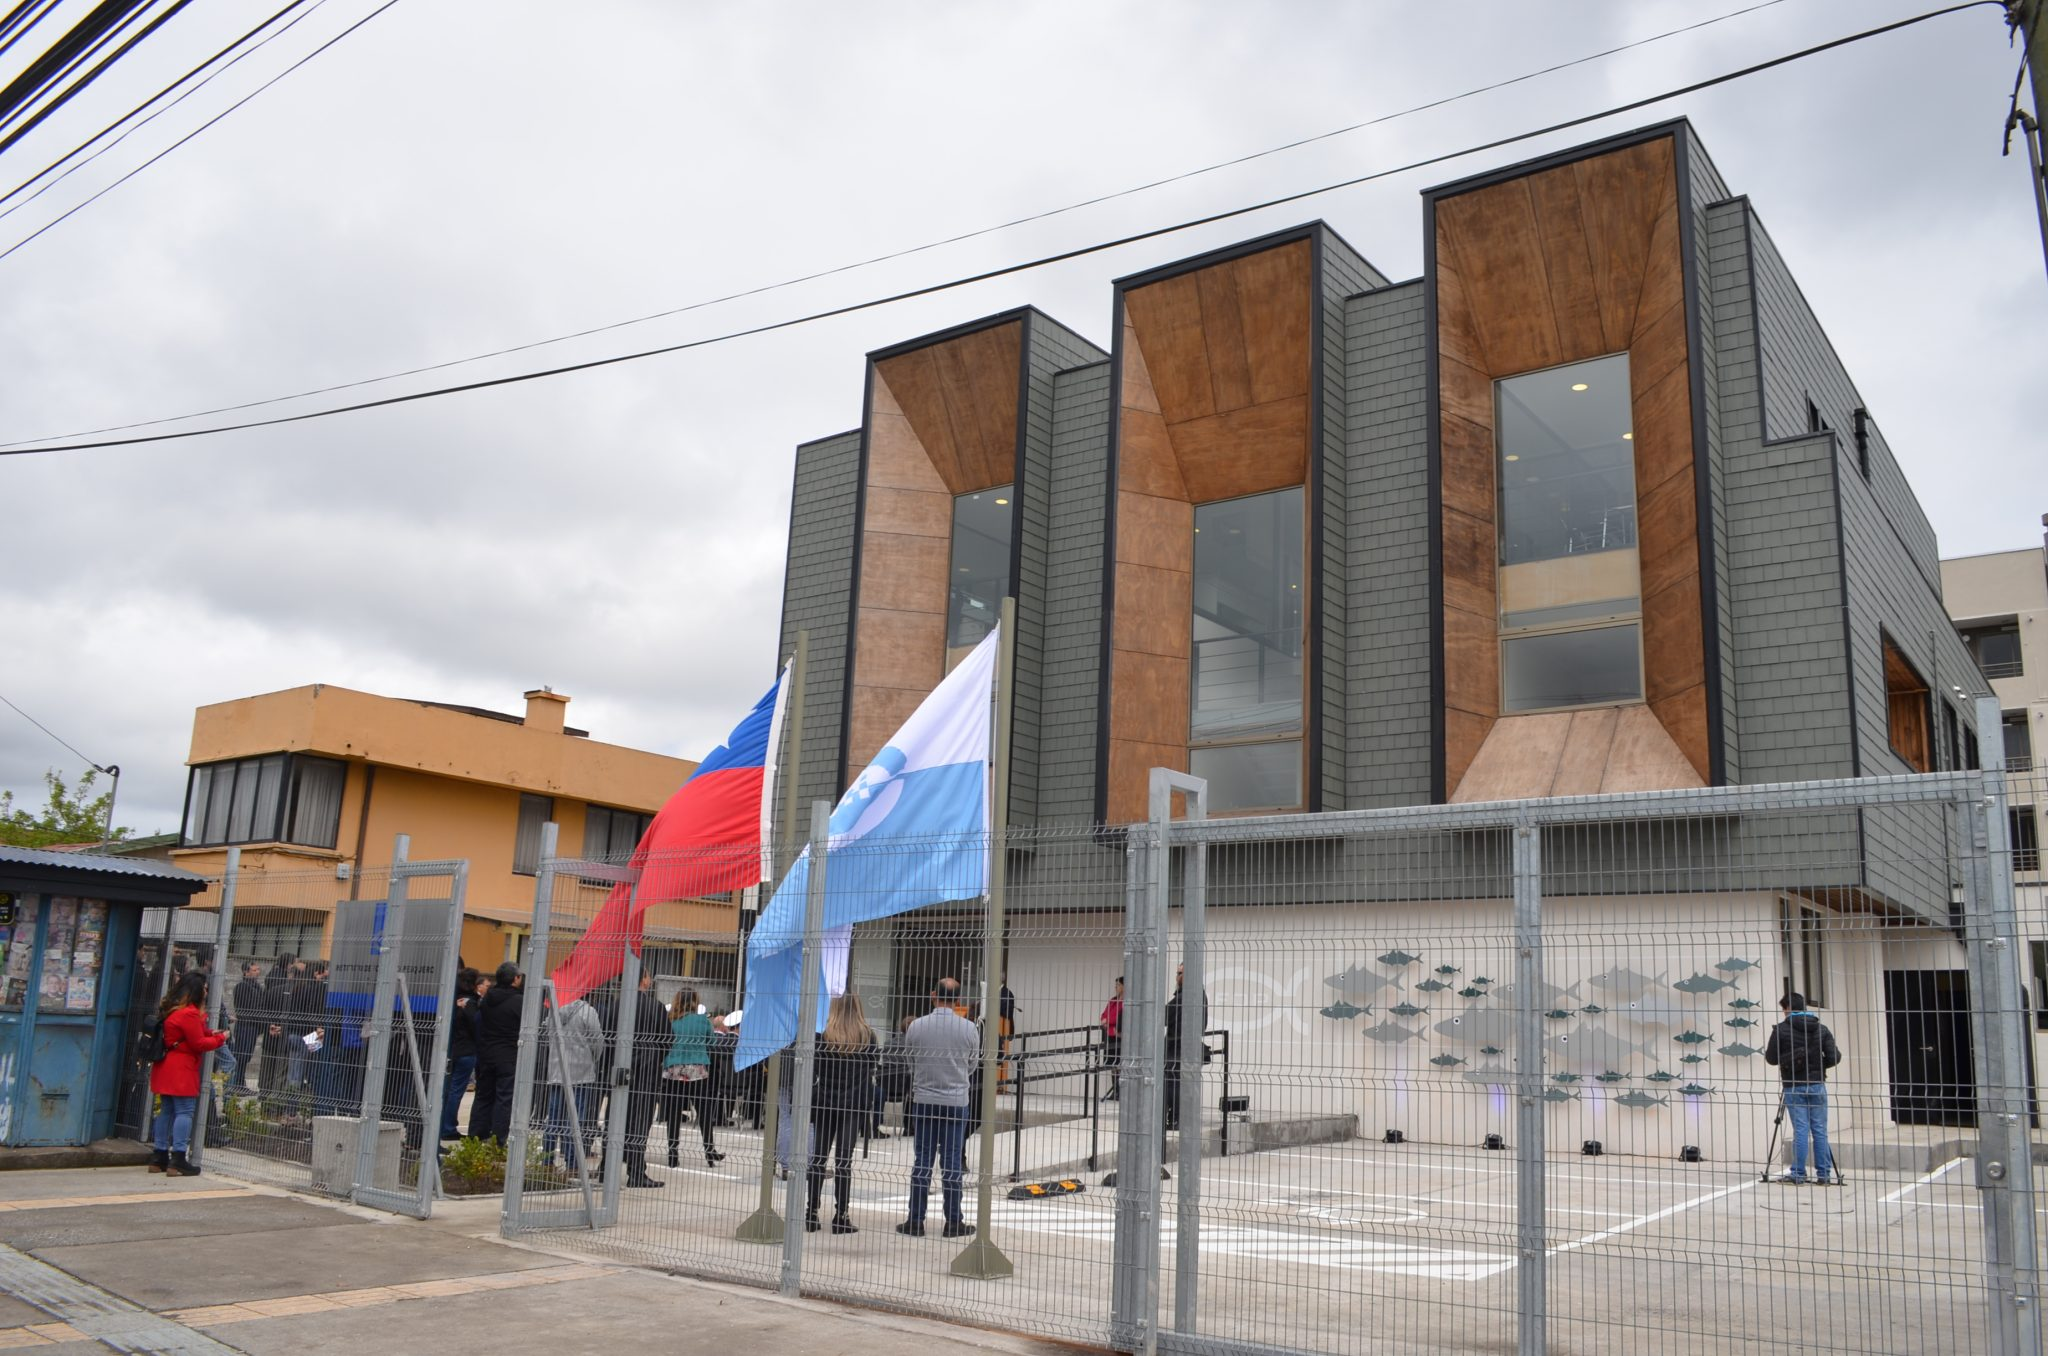 Fisheries Development Institute inaugurated new offices in Talcahuano